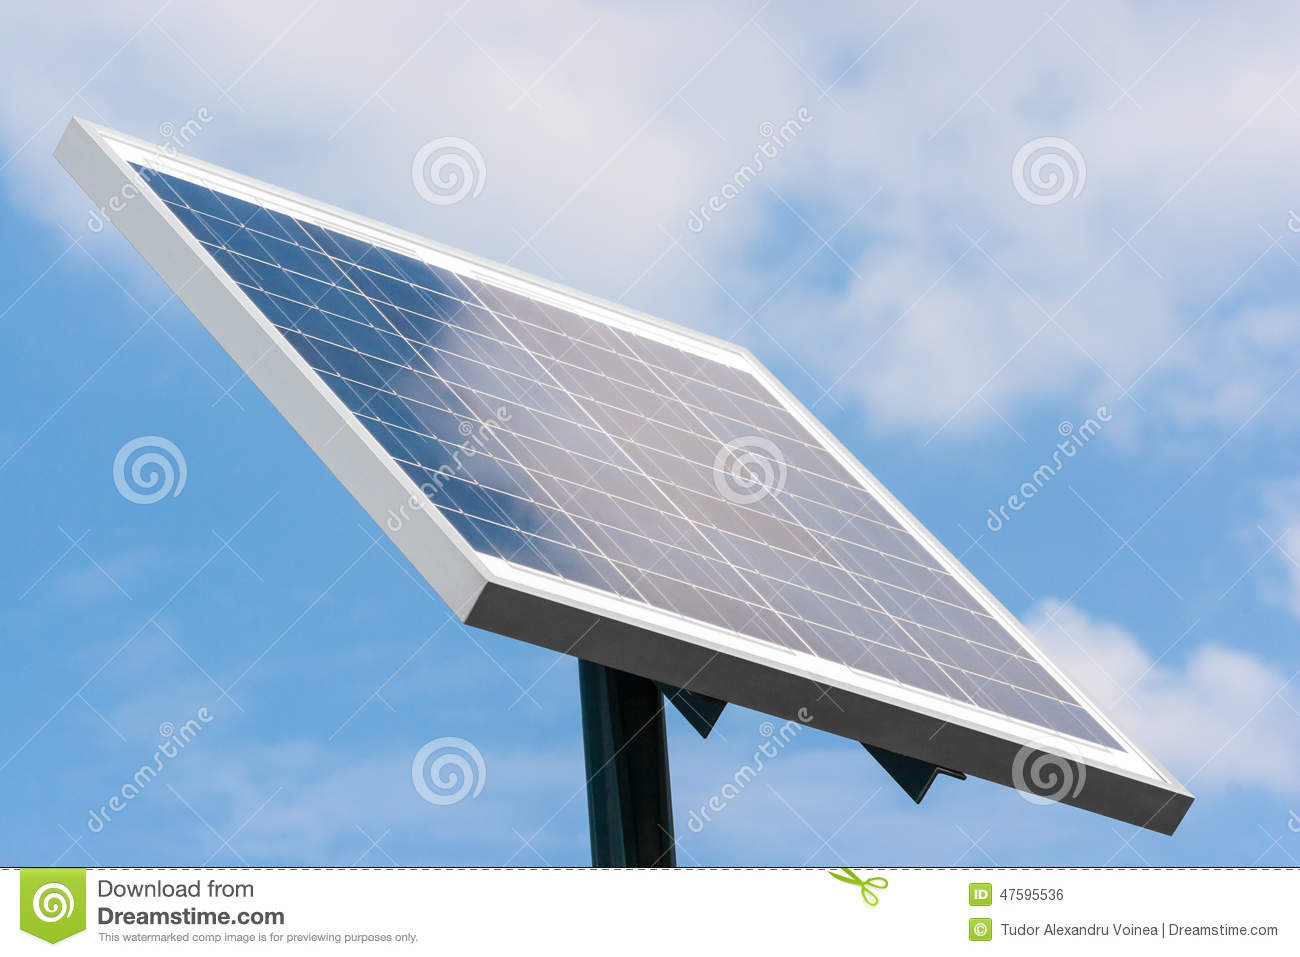 Solar panel mounted on a pole towards right with clouds reflecti